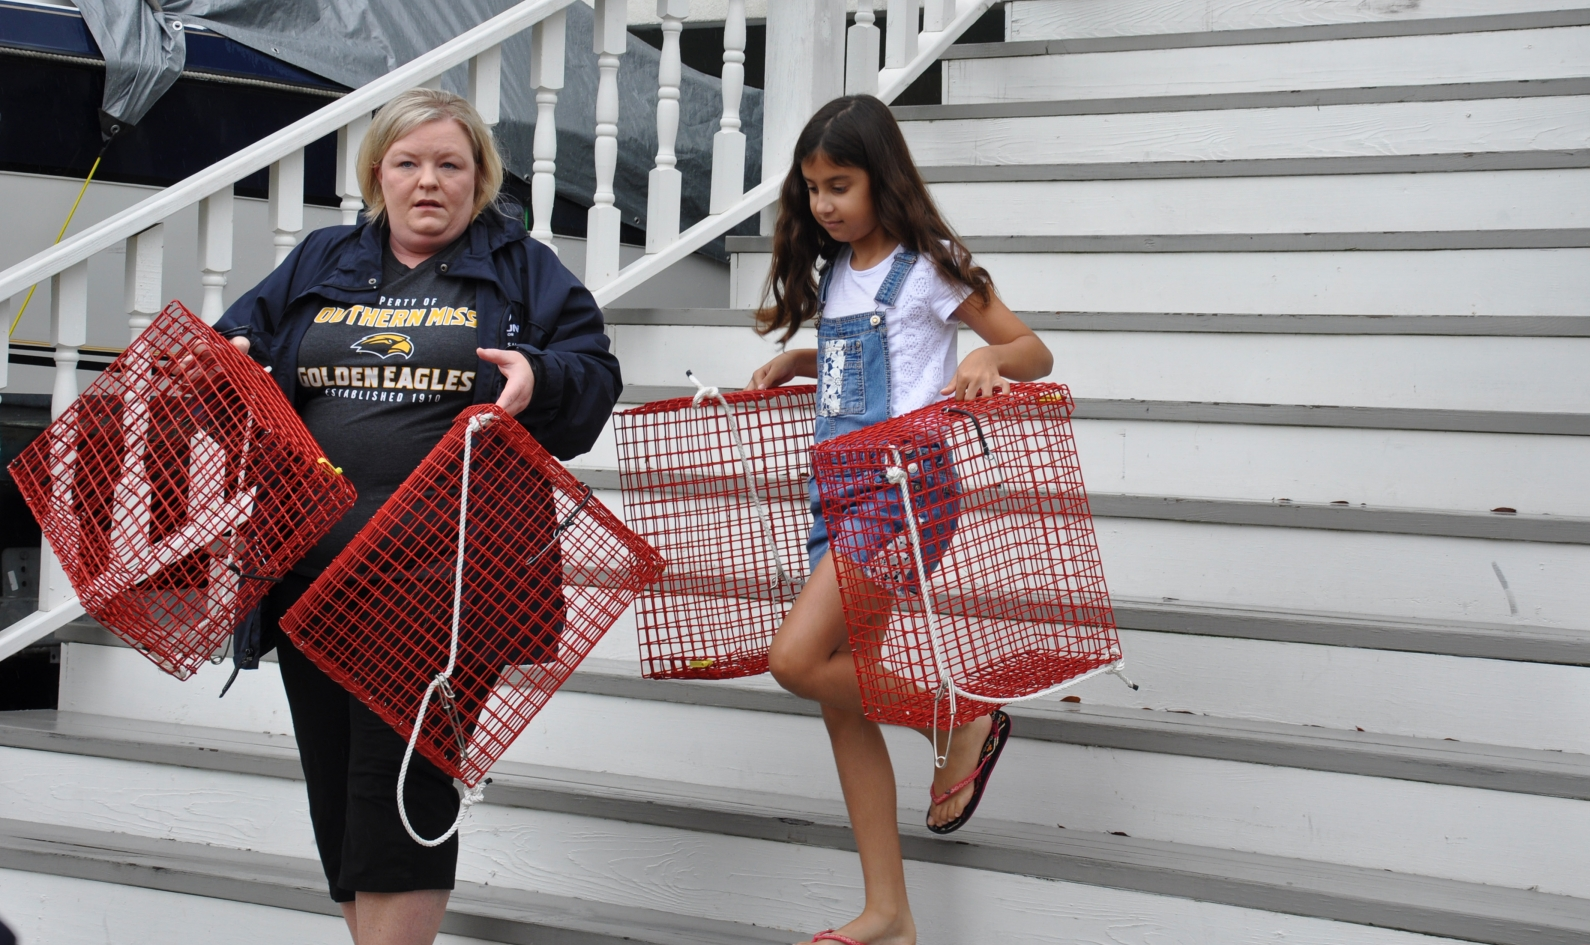 Ocean Springs neighbors Tonya Chancellor, left, and Mari Adlakha carry oyster gardens from a house to a pier.